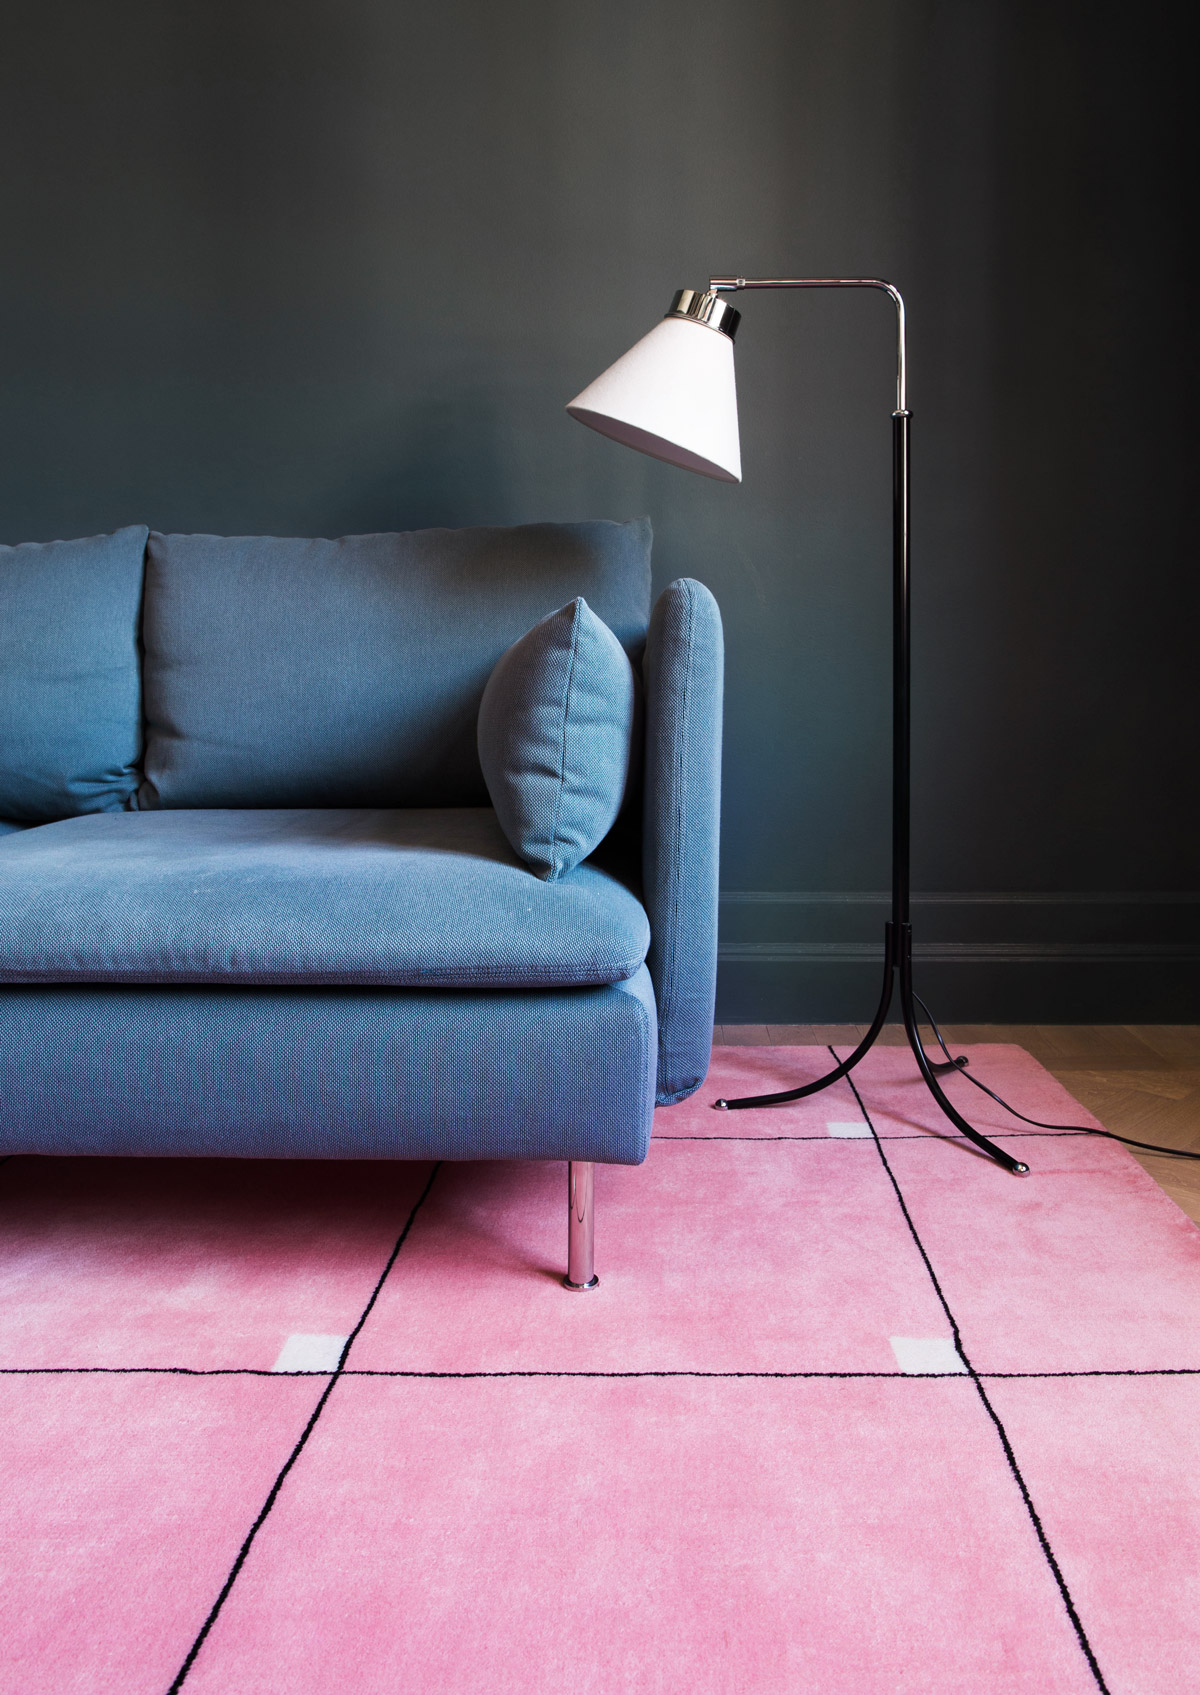 Plush rug Modern in color Pink shown together with a blue couch and a floor lamp.